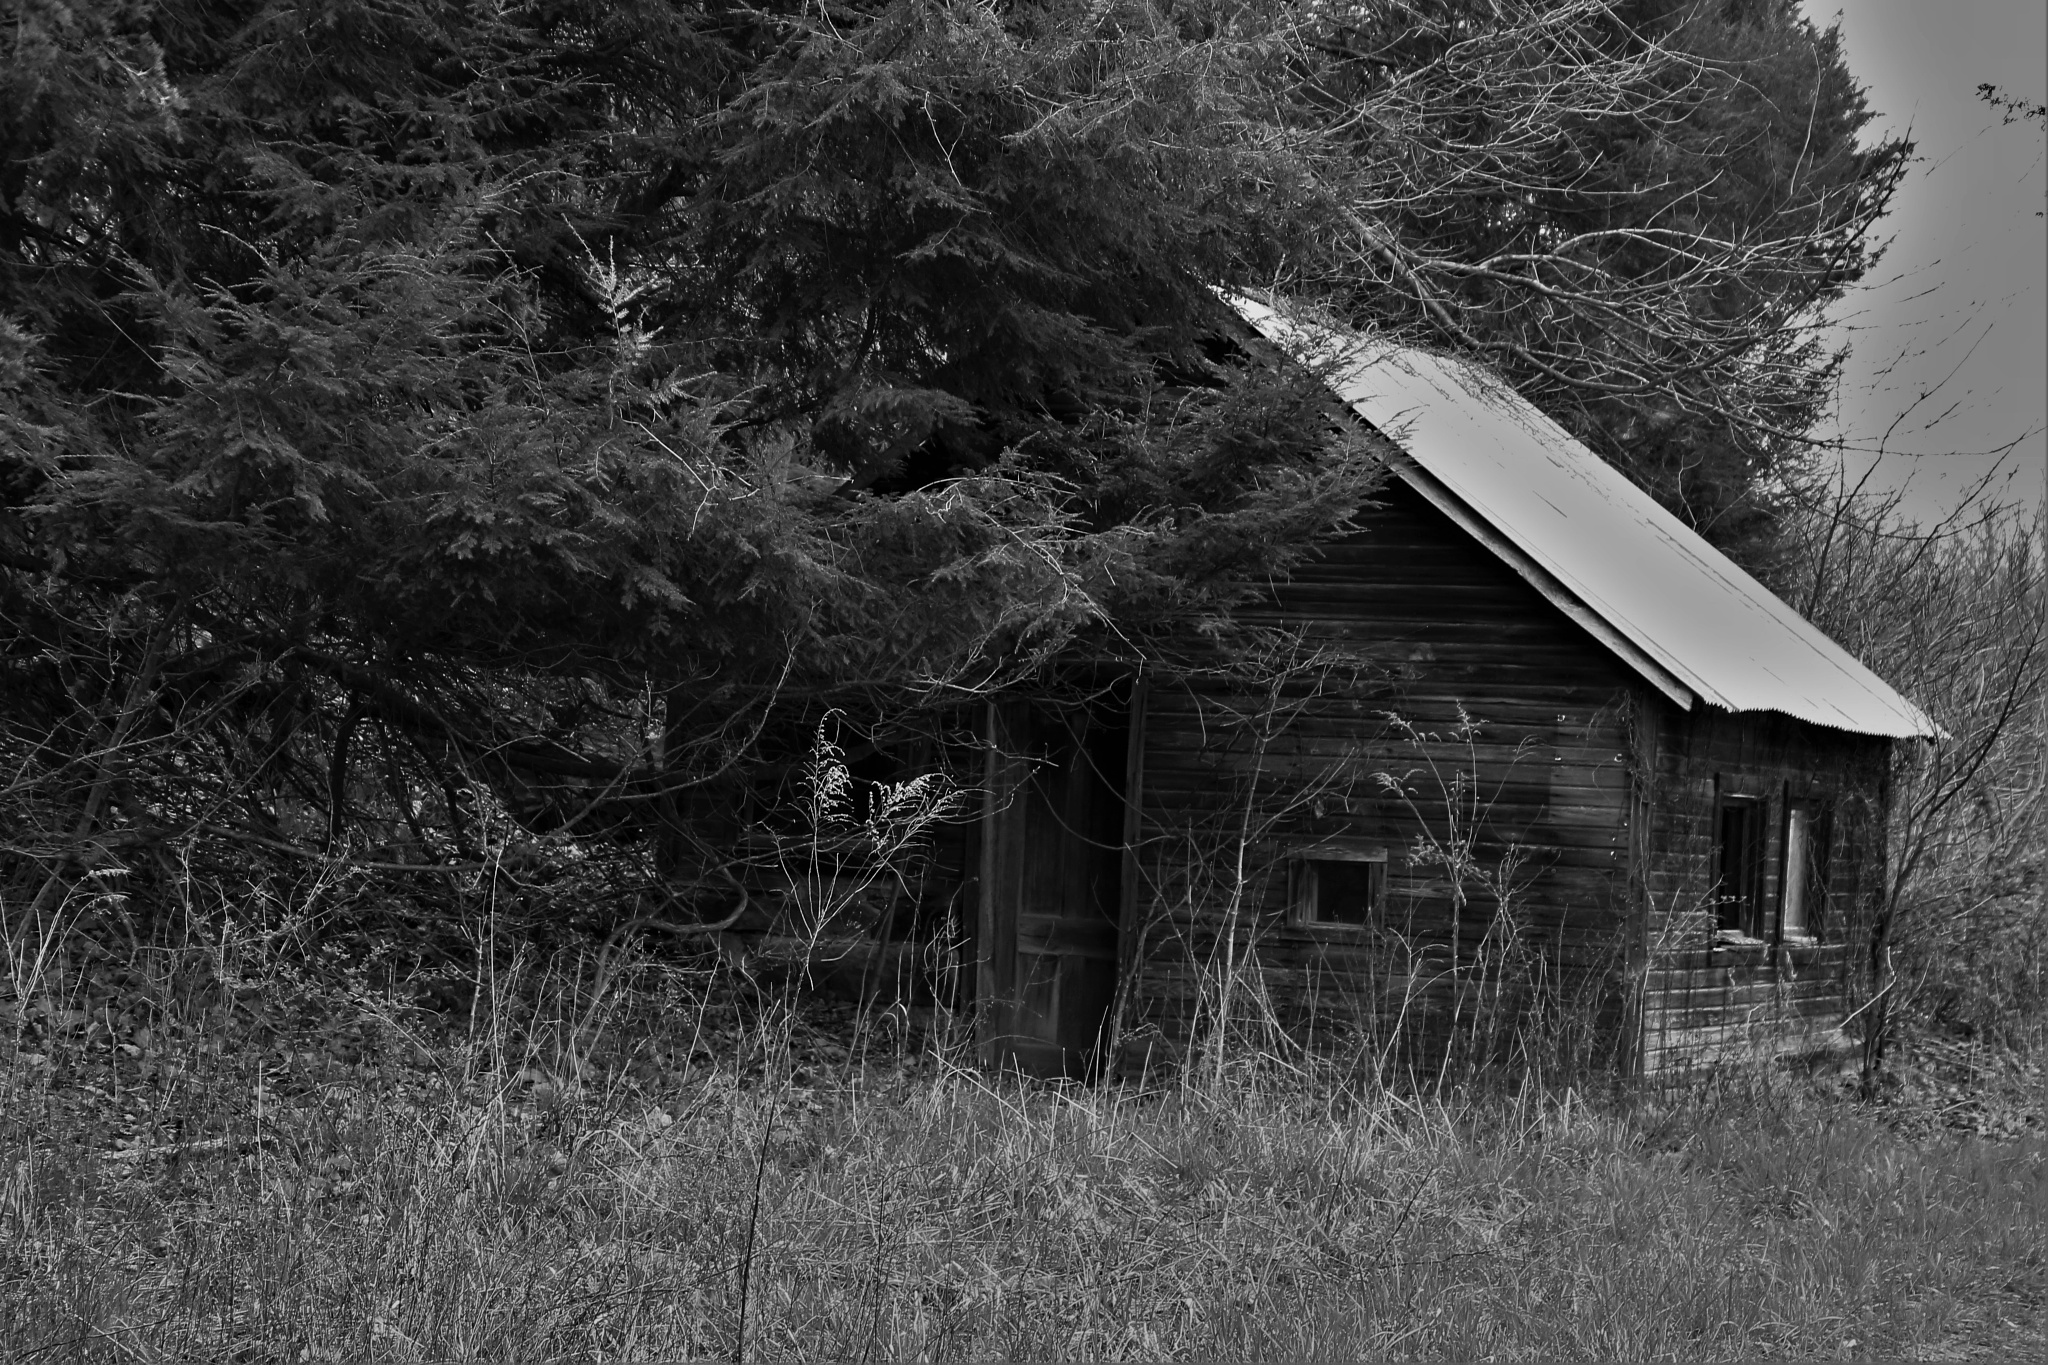 Old Farm Shed by robin.smith.3150